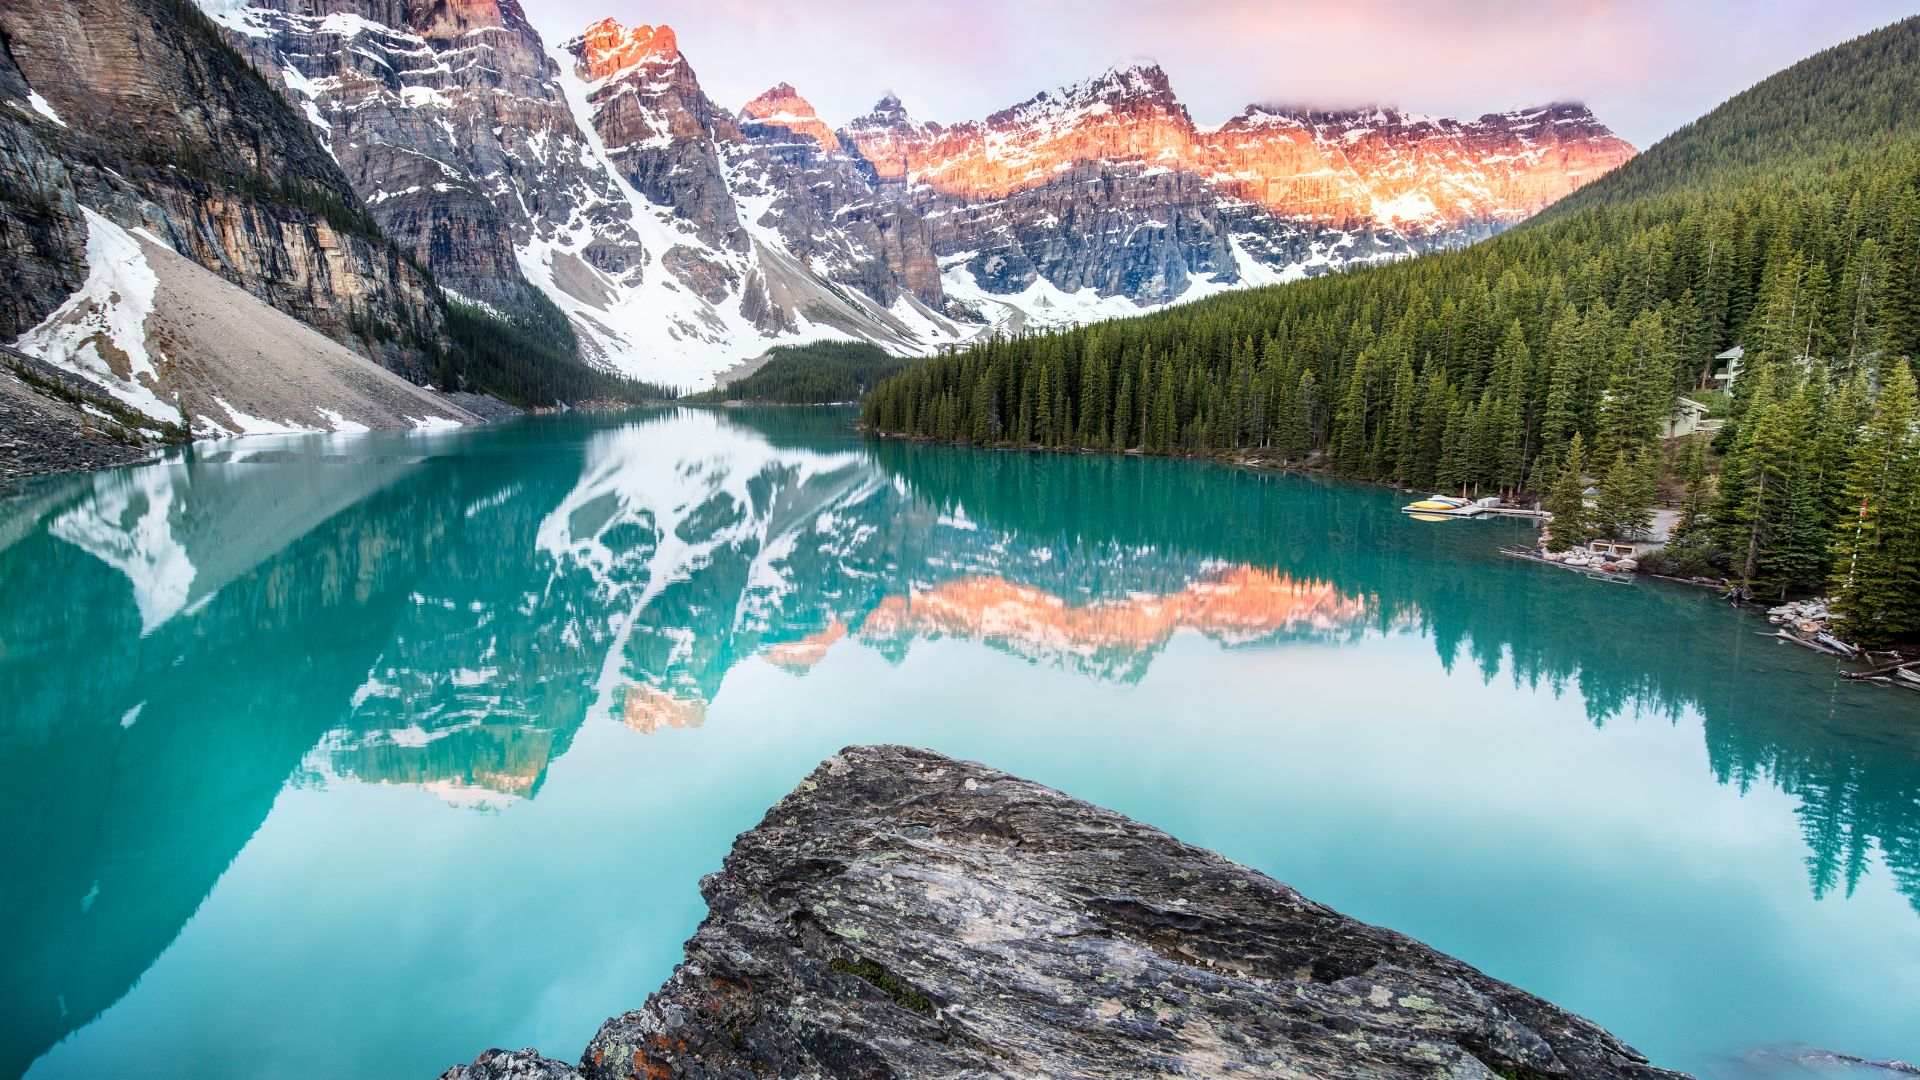 озеро Морейн, горы, Moraine Lake, Banff, Canada, mountains, forest, 4k (horizontal)